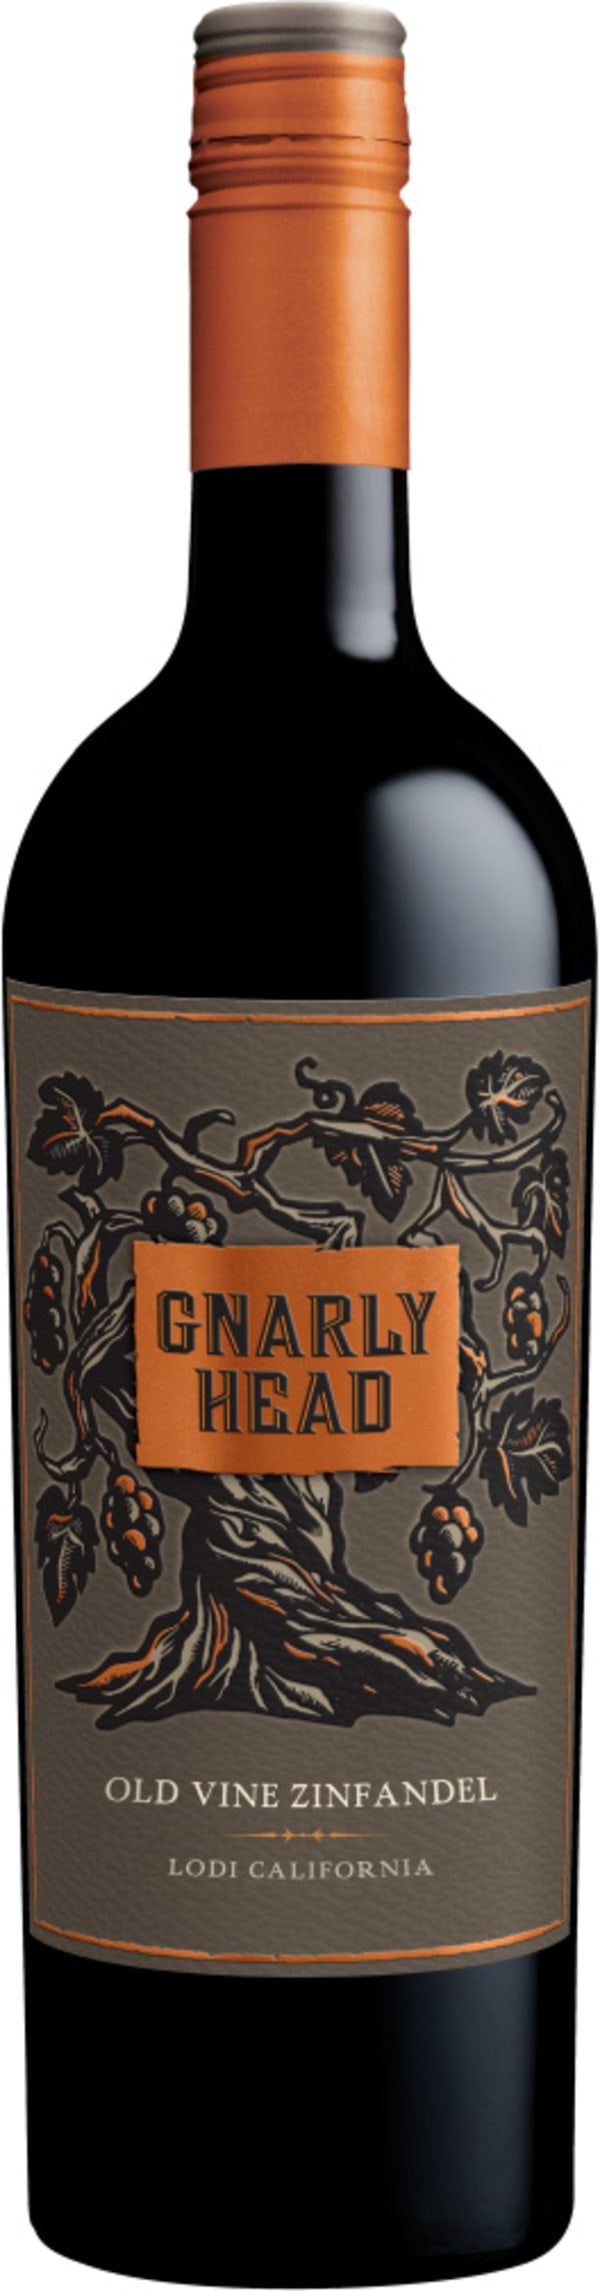 Gnarly Head Old Vine Zin 2015